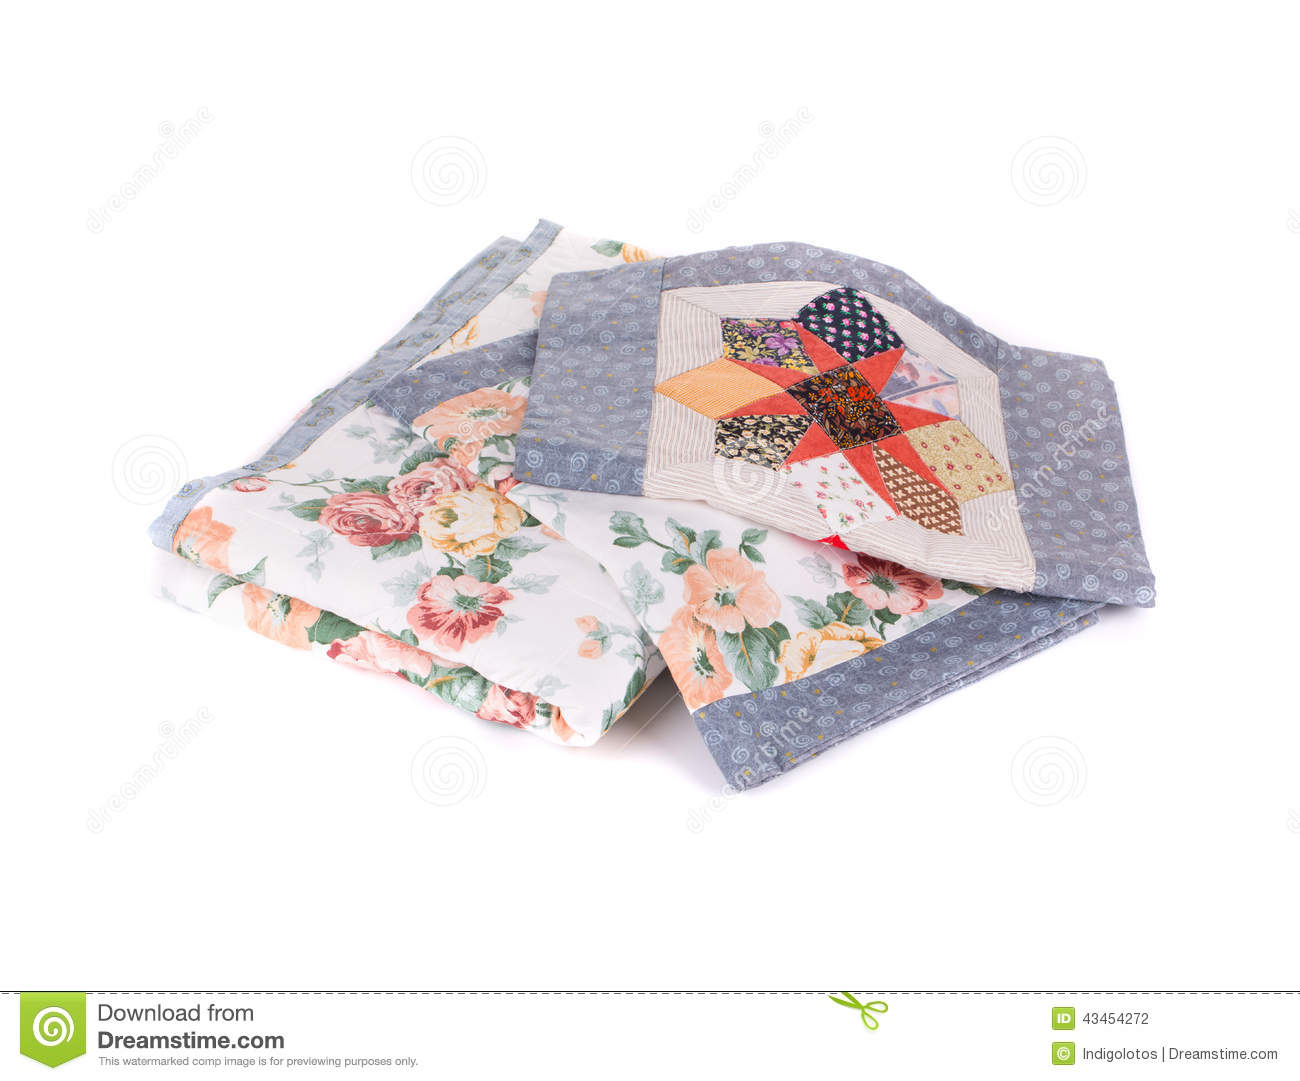 Bedding set with flowers.